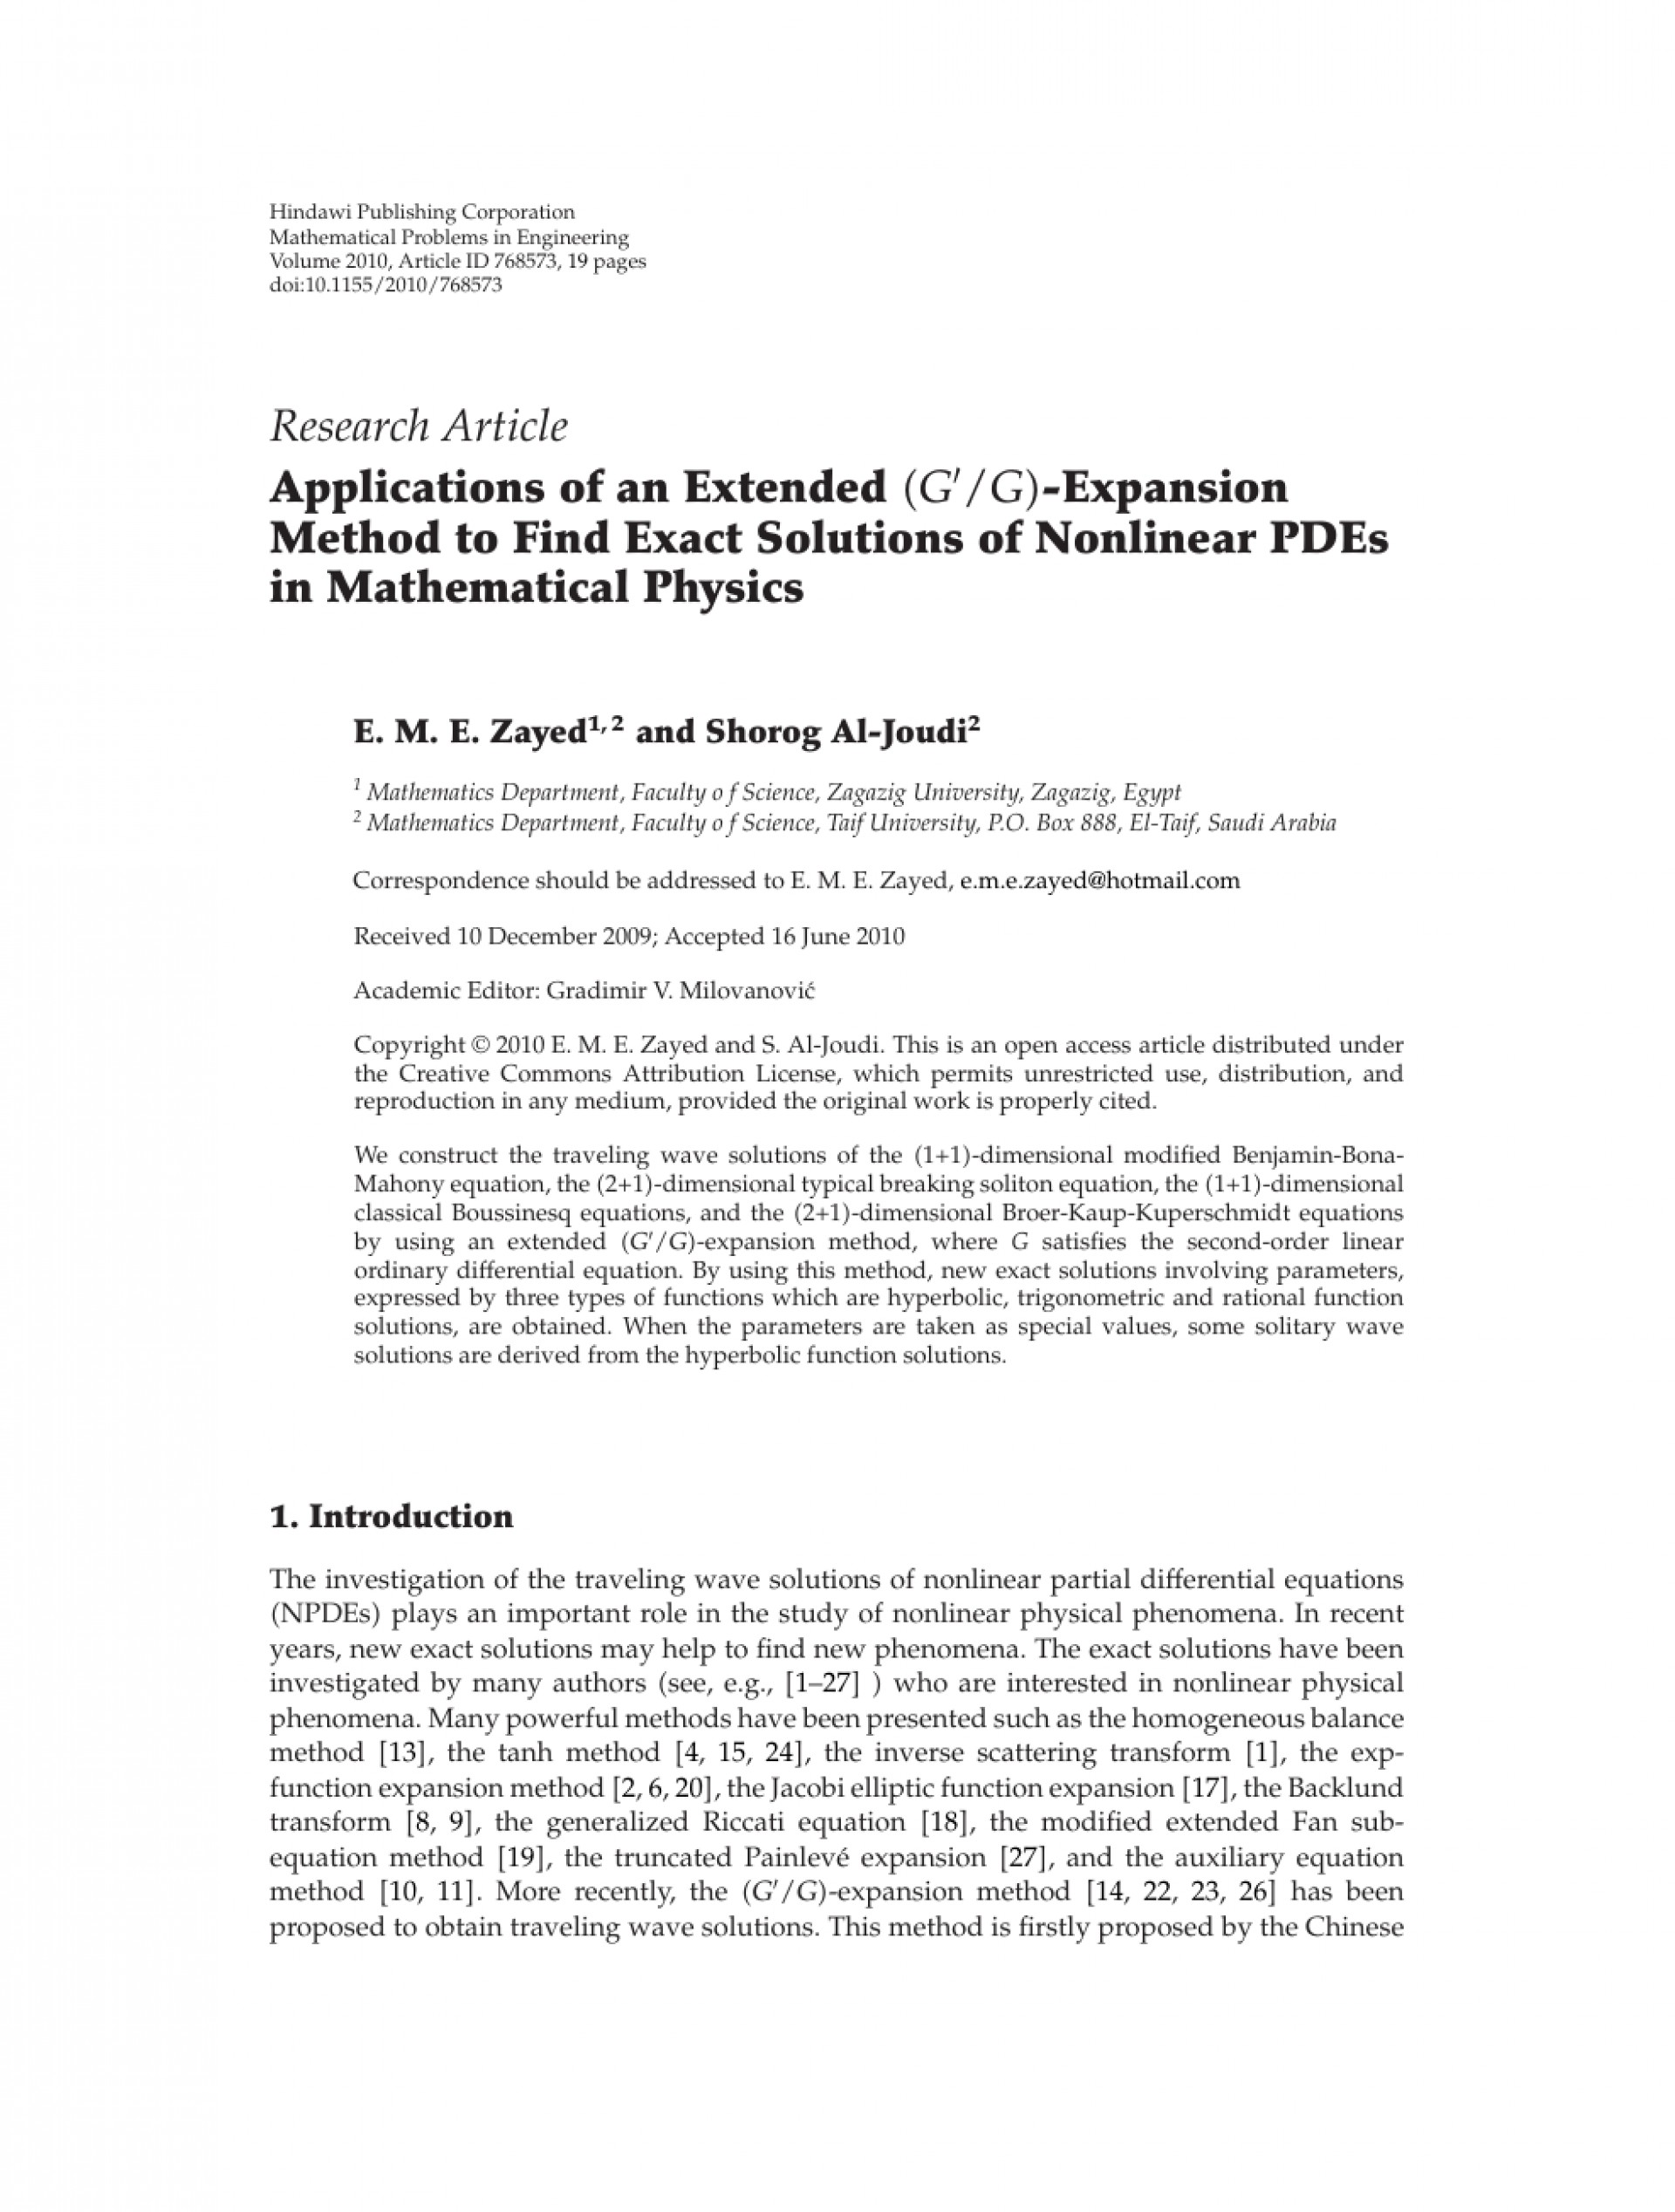 001 Physics Research Papers Free Download Pdf Paper Magnificent 1920